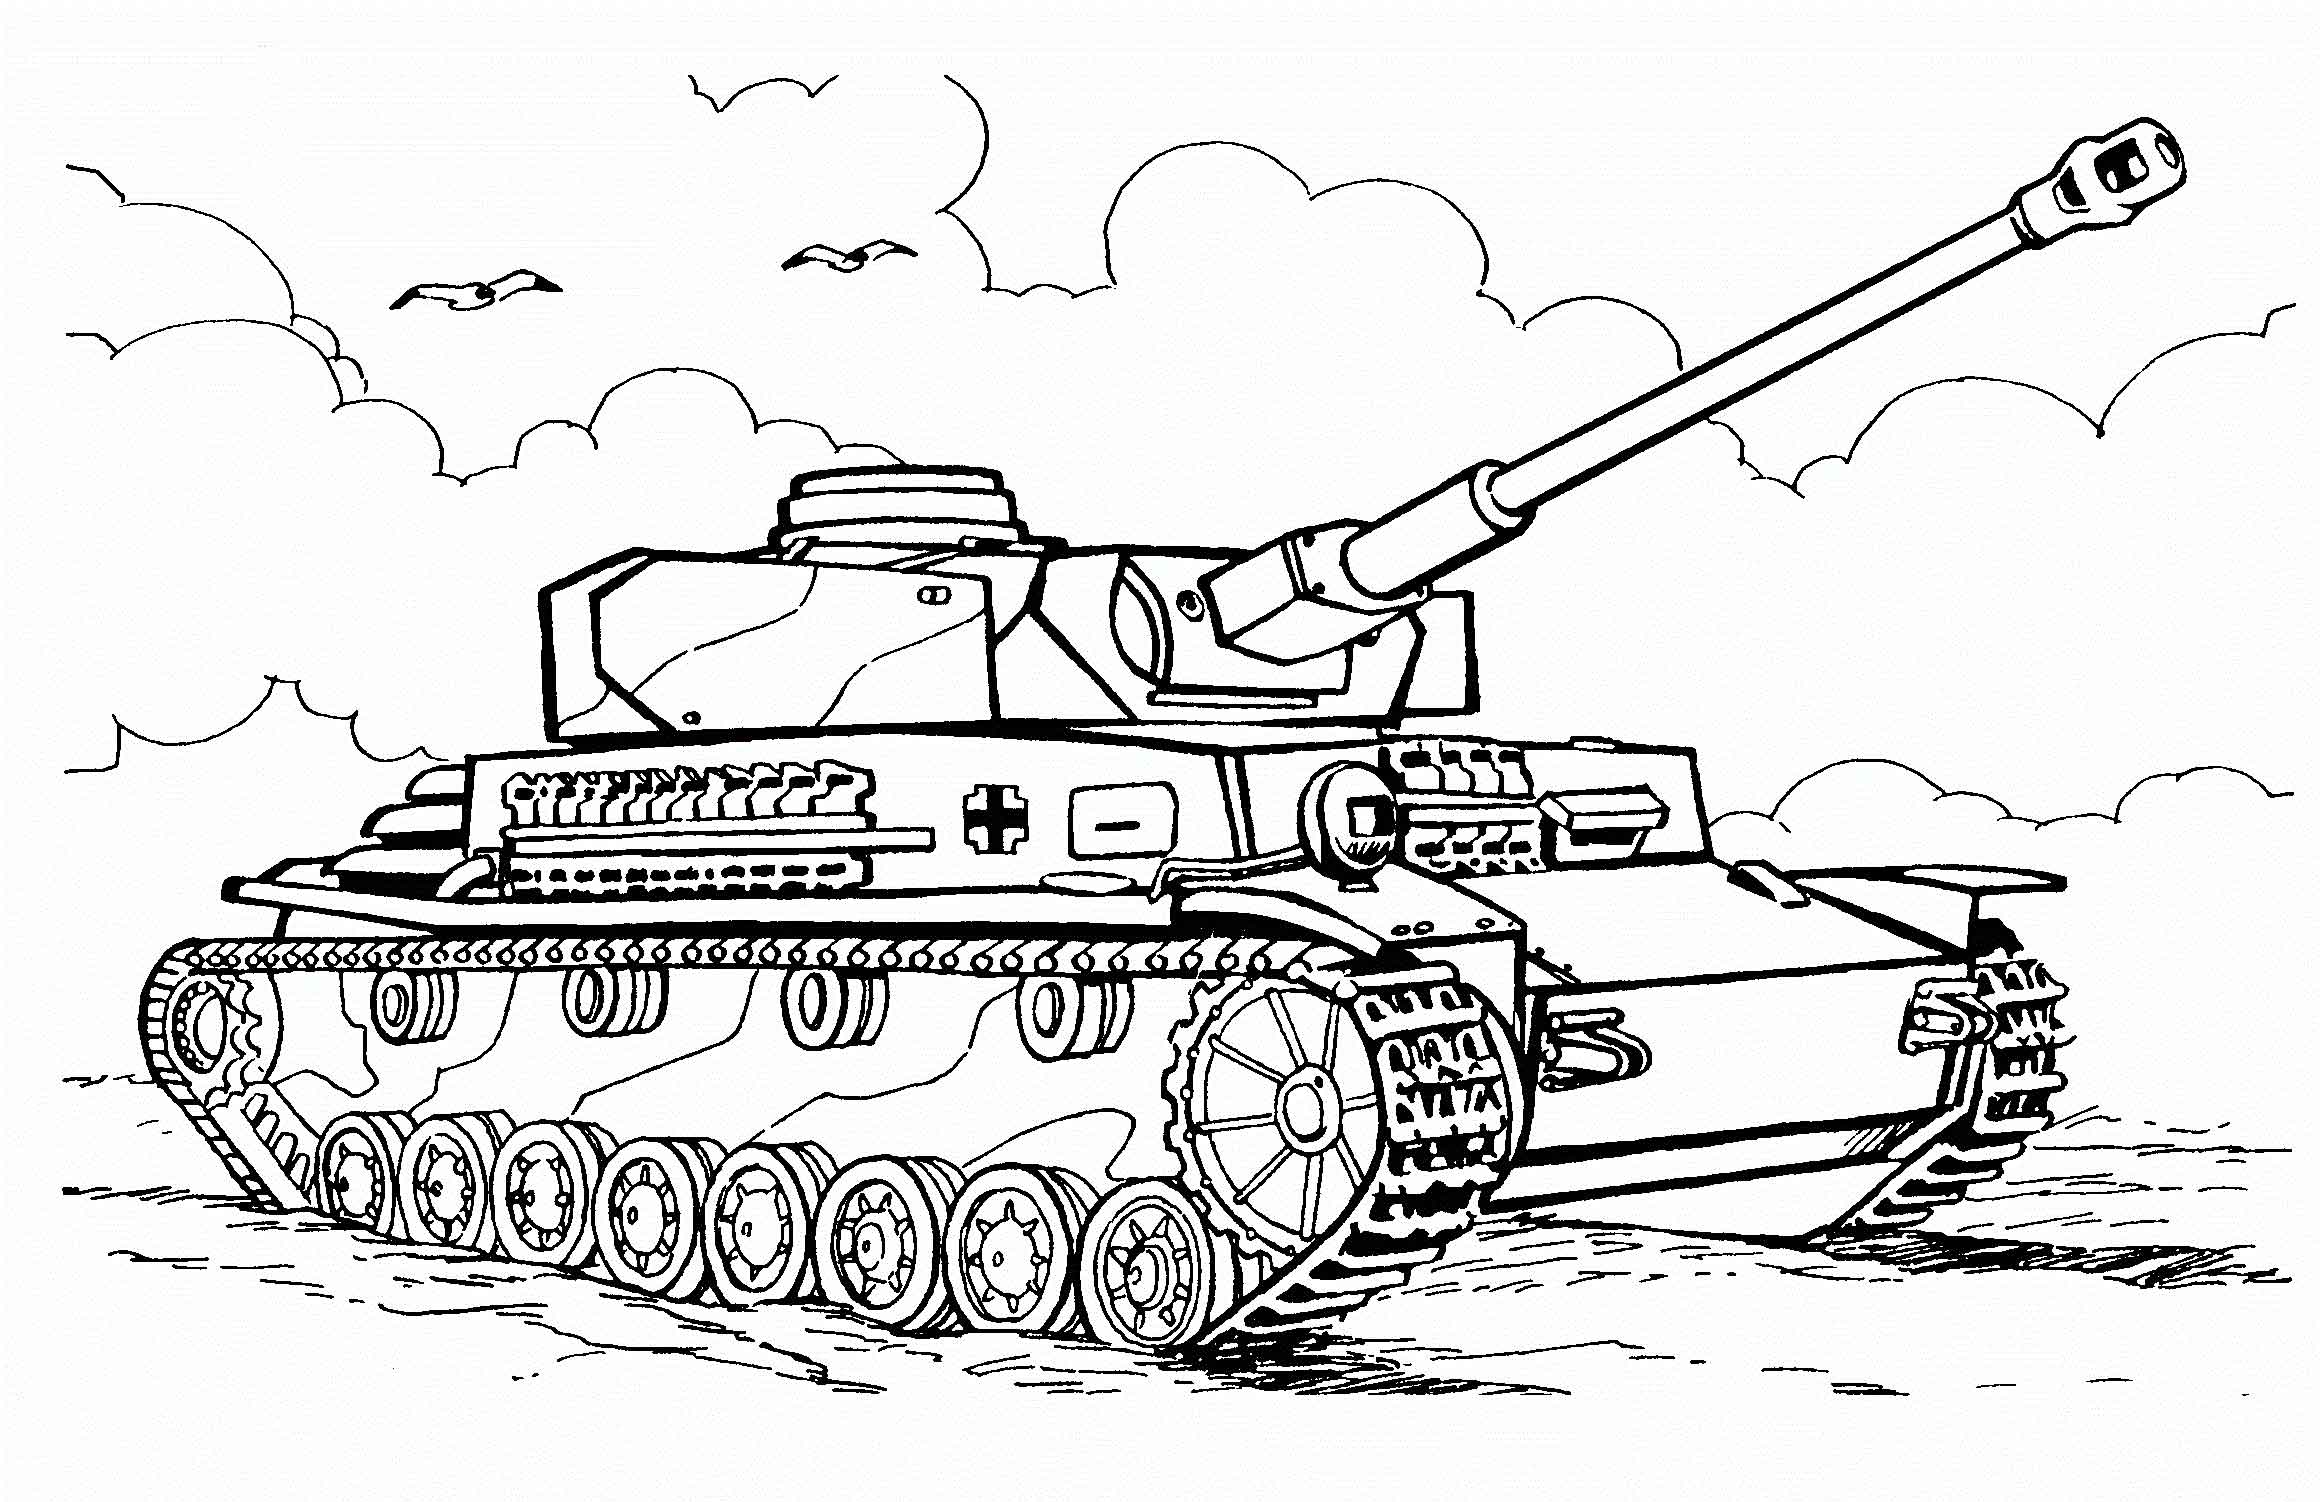 army tank coloring pictures military tank coloring pages army tank coloring pictures